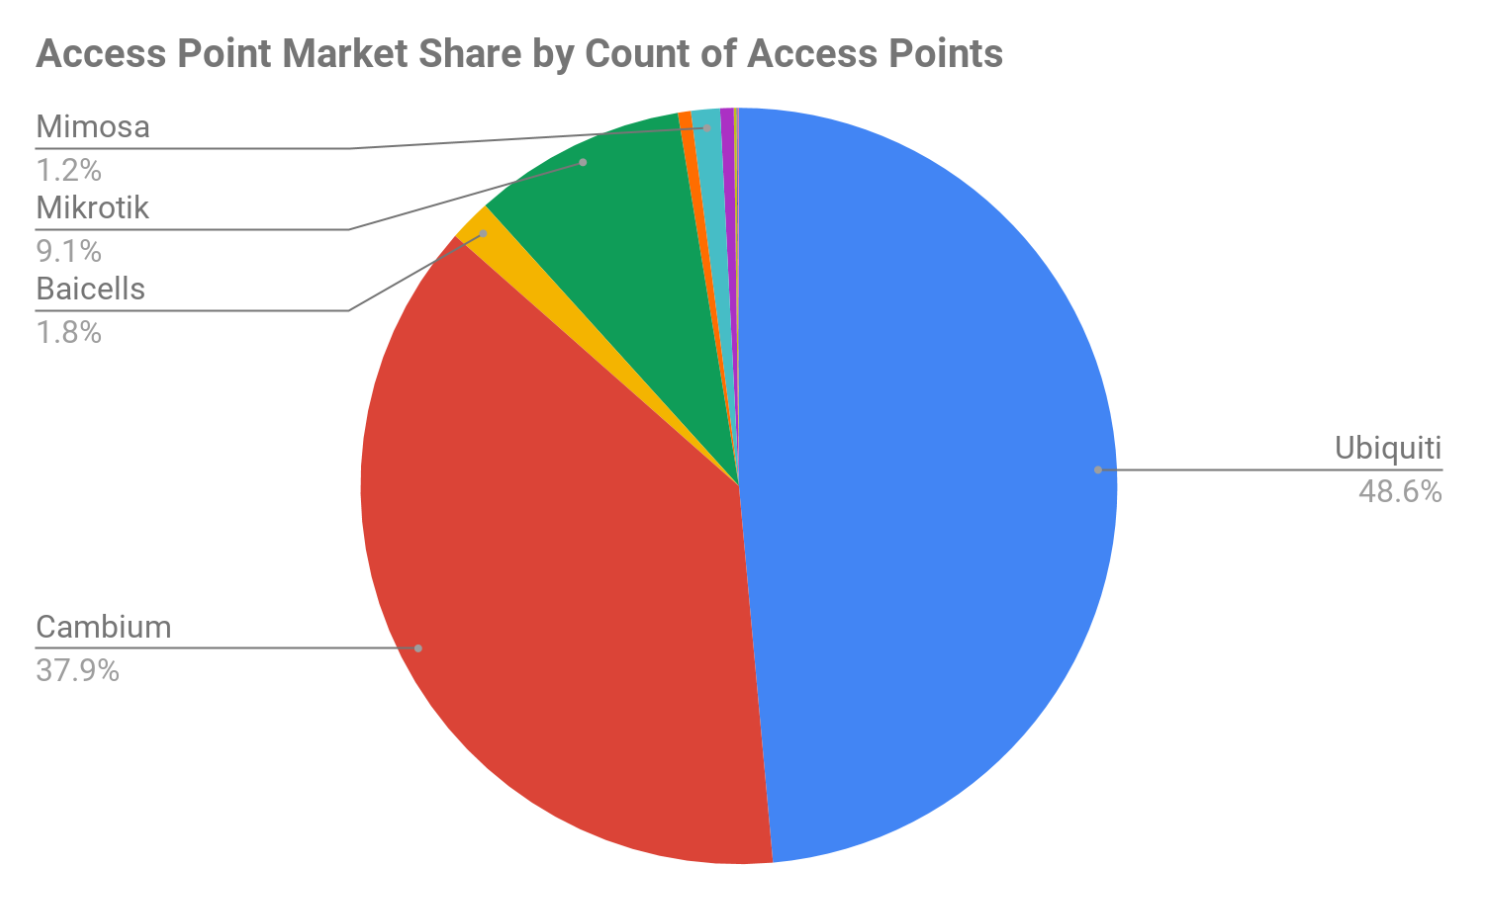 A pie chart showing Access Point Market by Count of Access Points